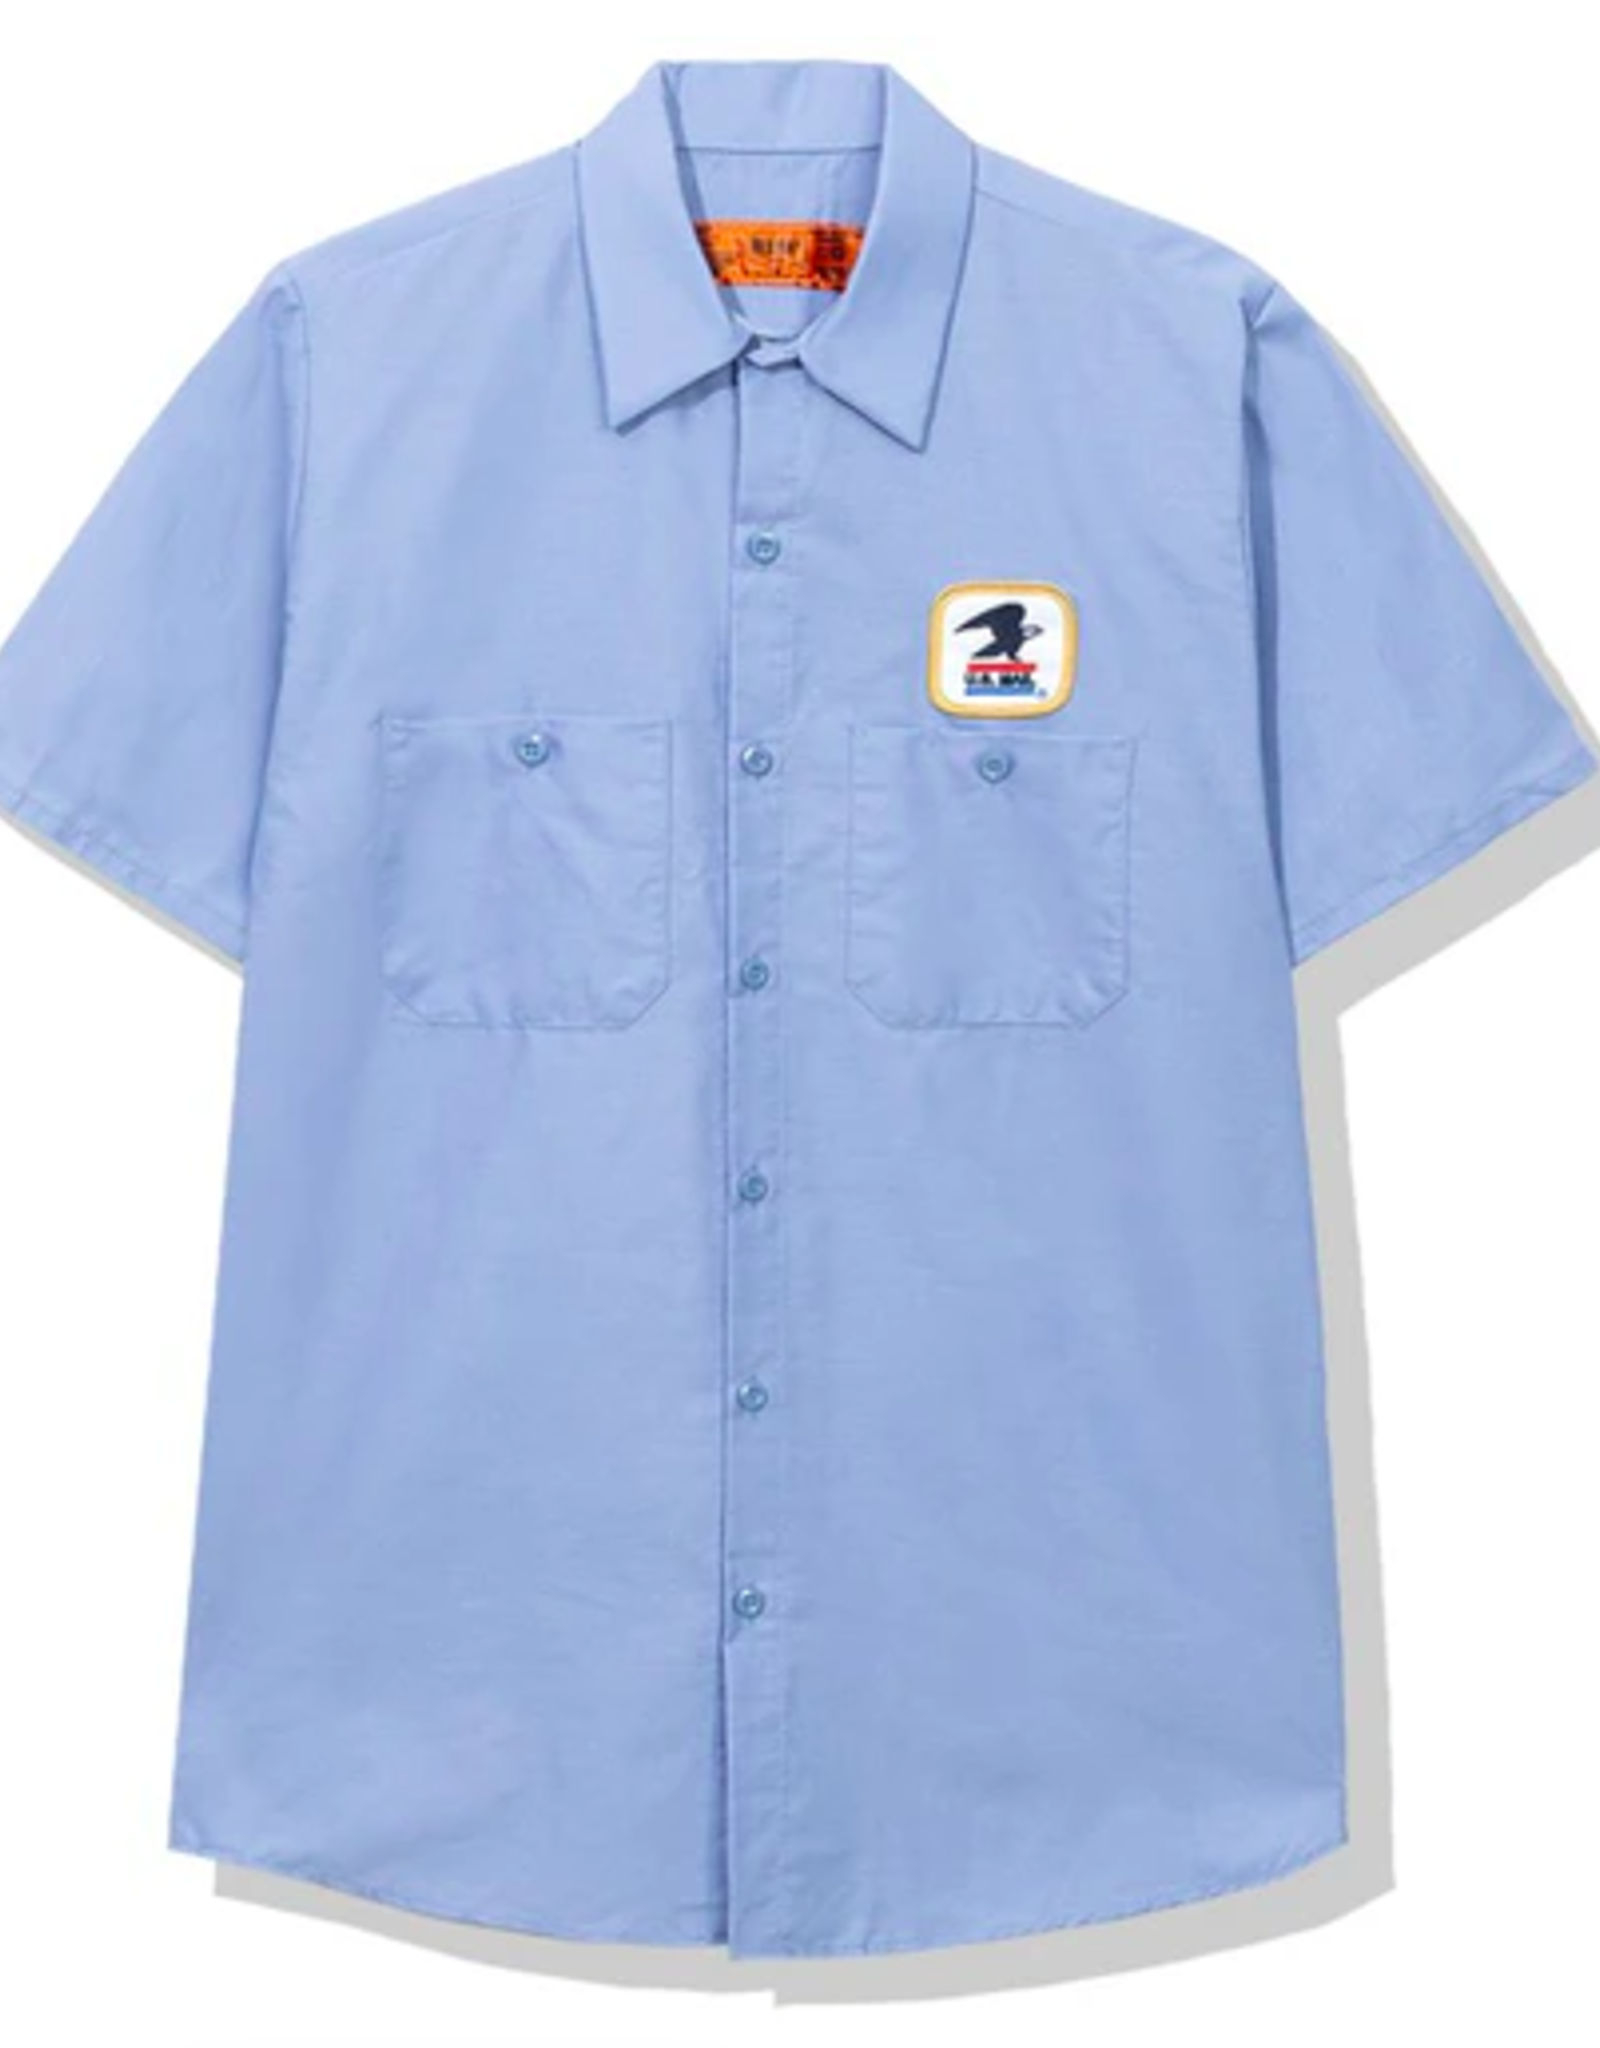 ASSC x USPS Work Shirt Light Blue